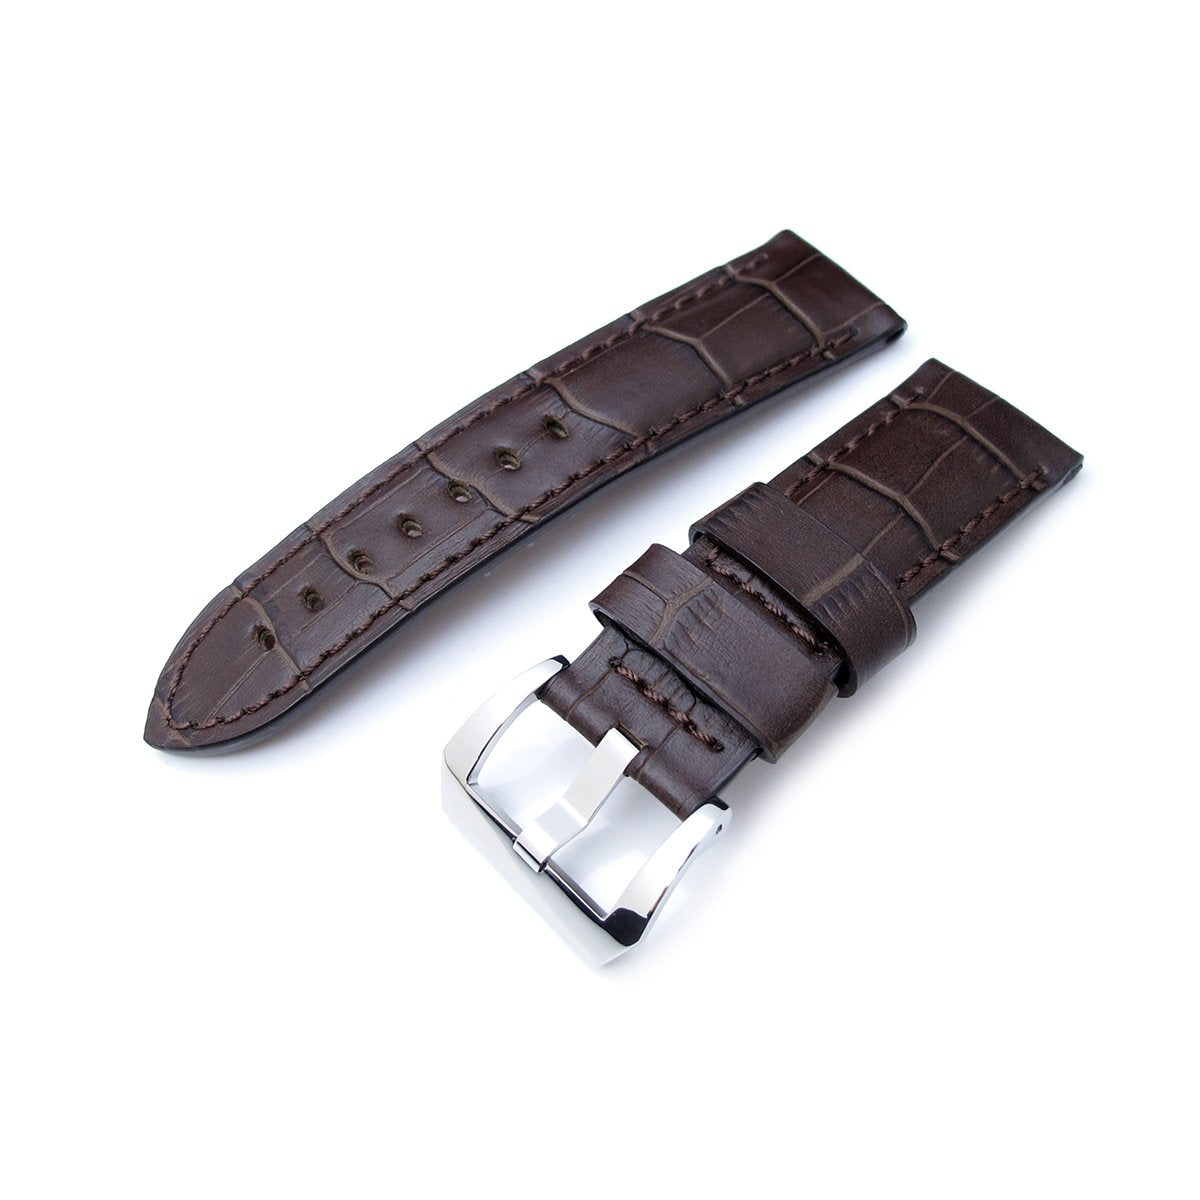 24mm CrocoCalf (Croco Grain) Matte Brown Watch Strap with Brown Stitches Polished Screw-in Buckle Strapcode Watch Bands